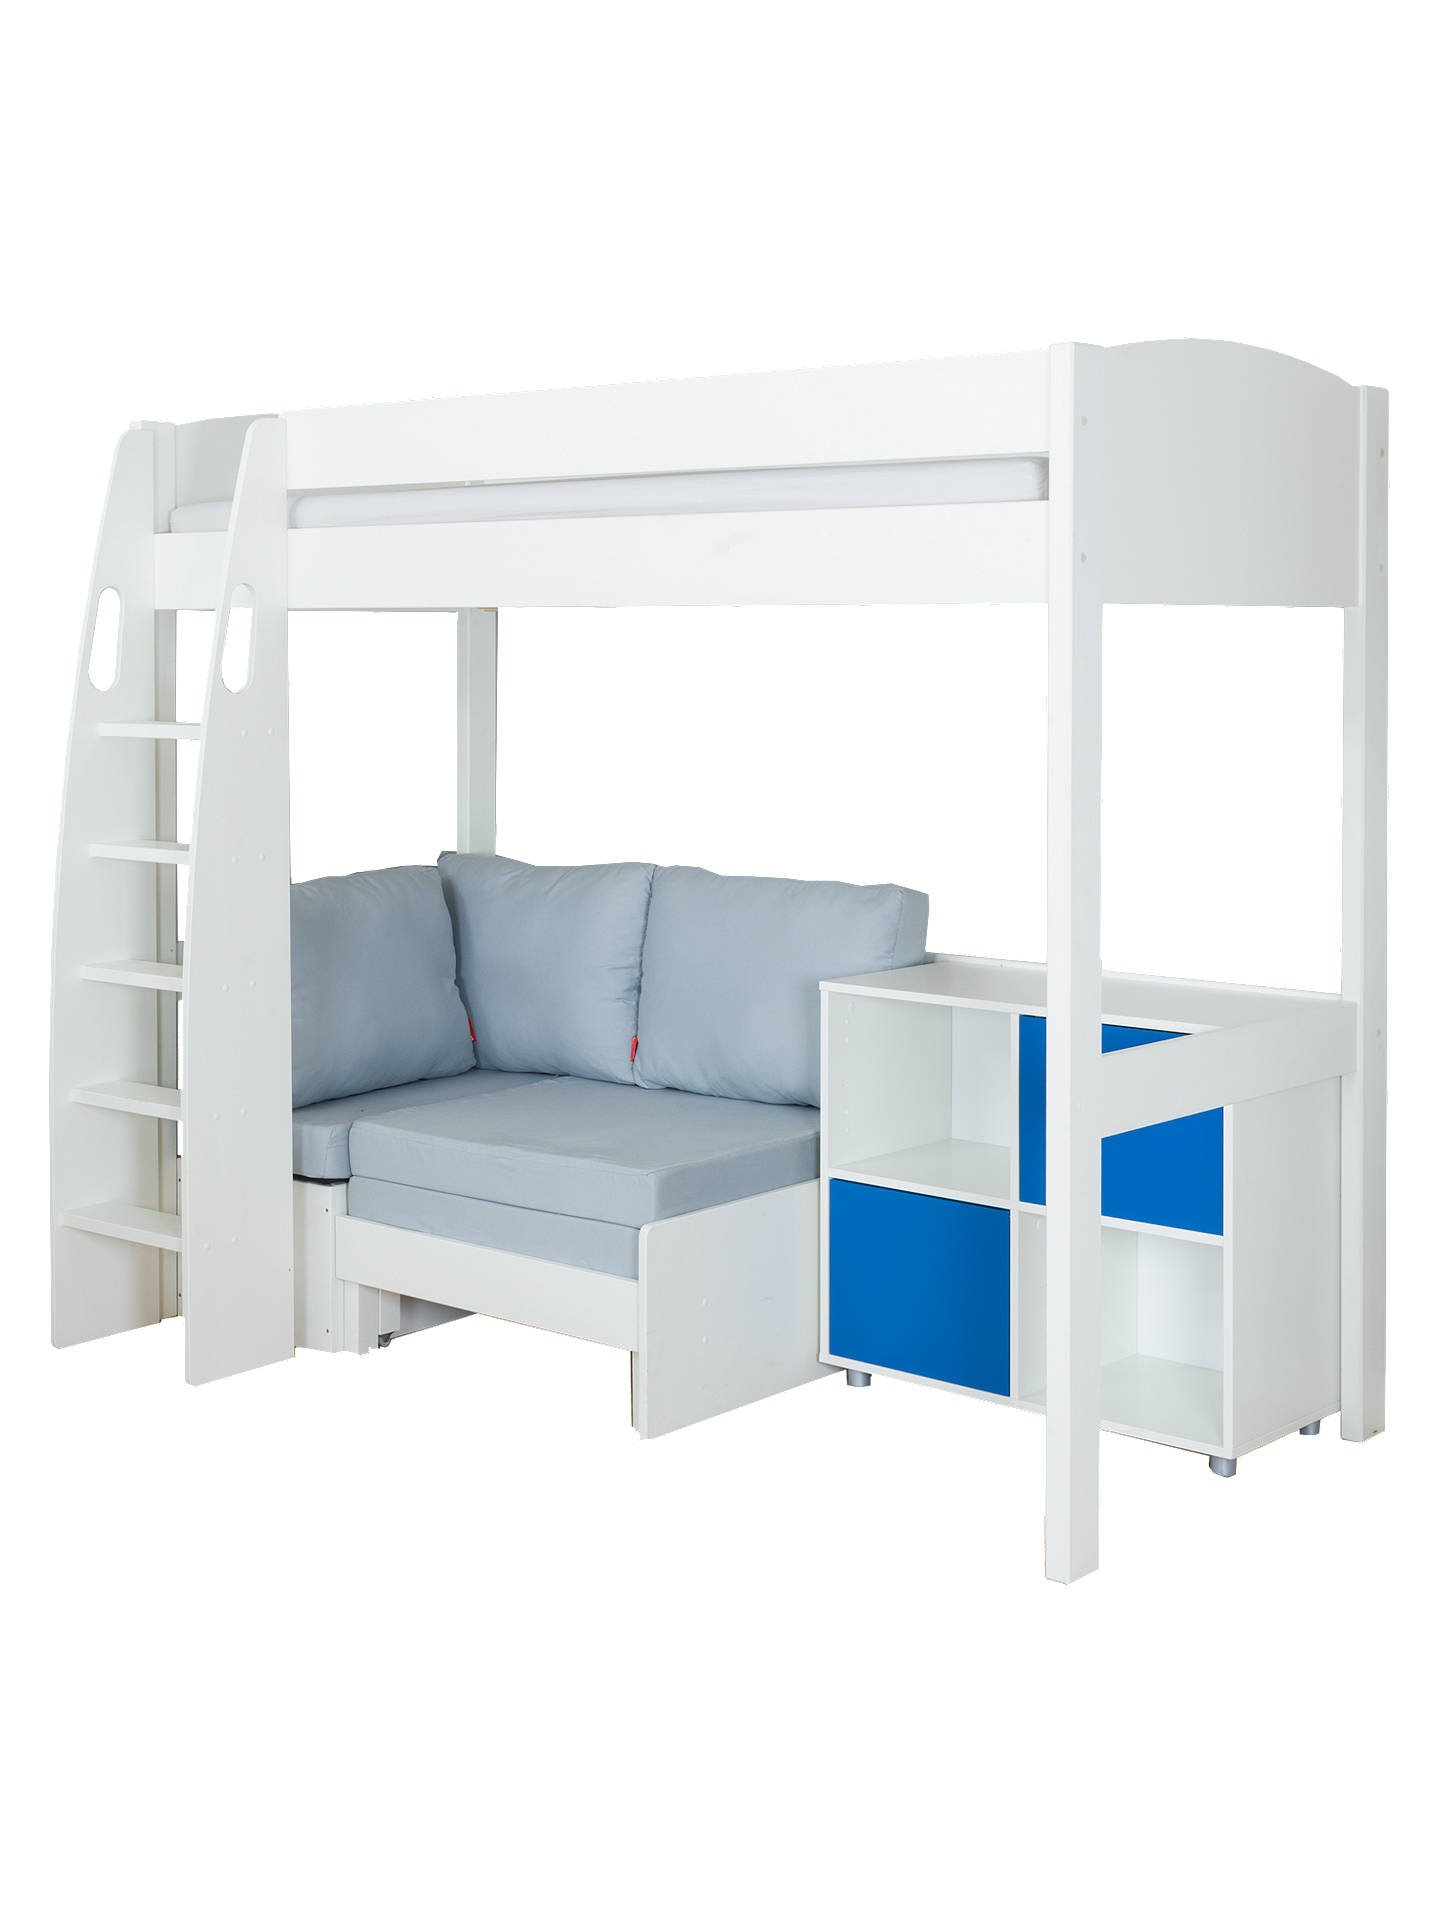 Buy Stompa Uno S Plus High-Sleeper with White Headboard, Grey Chair Bed and 2 Door Cube Unit, Grey/Blue Online at johnlewis.com